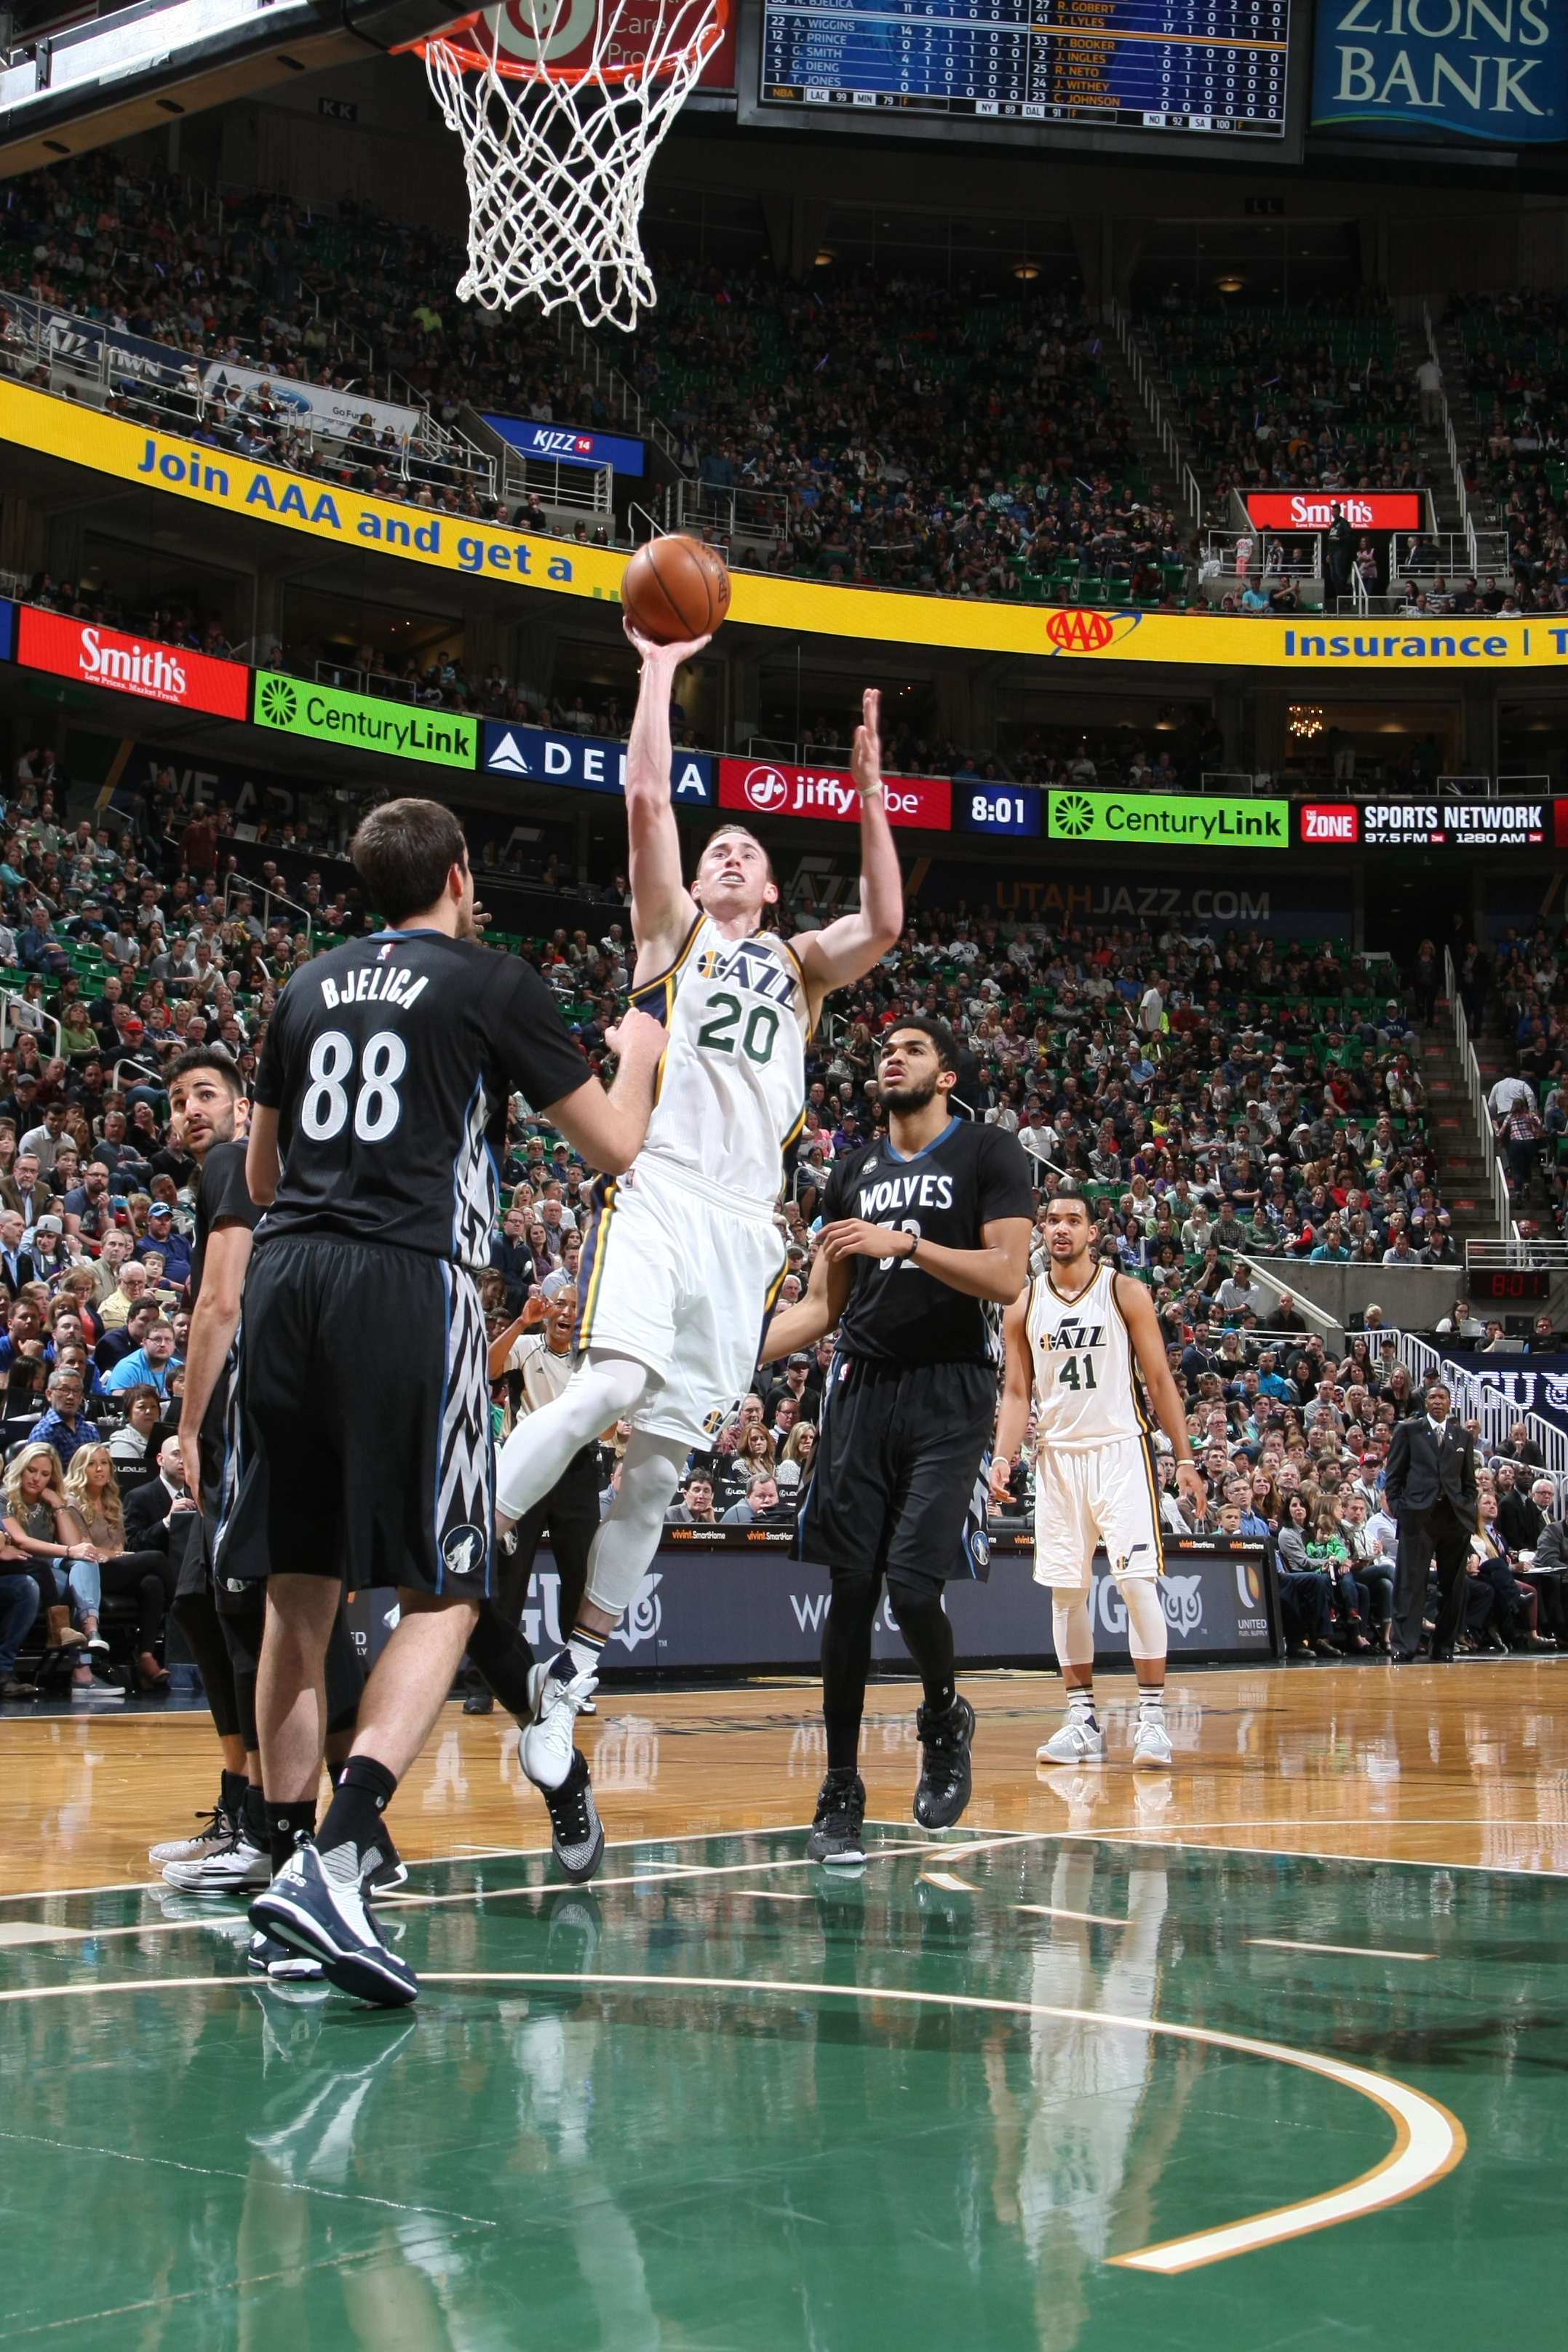 SALT LAKE CITY, UT  - APRIL 1: Gordon Hayward #20 of the Utah Jazz goes for the lay up against the Minnesota Timberwolves during the game on April 1, 2016 at Vivint Smart Home Arena in Salt Lake City, Utah. (Photo by Melissa Majchrzak/NBAE via Getty Image